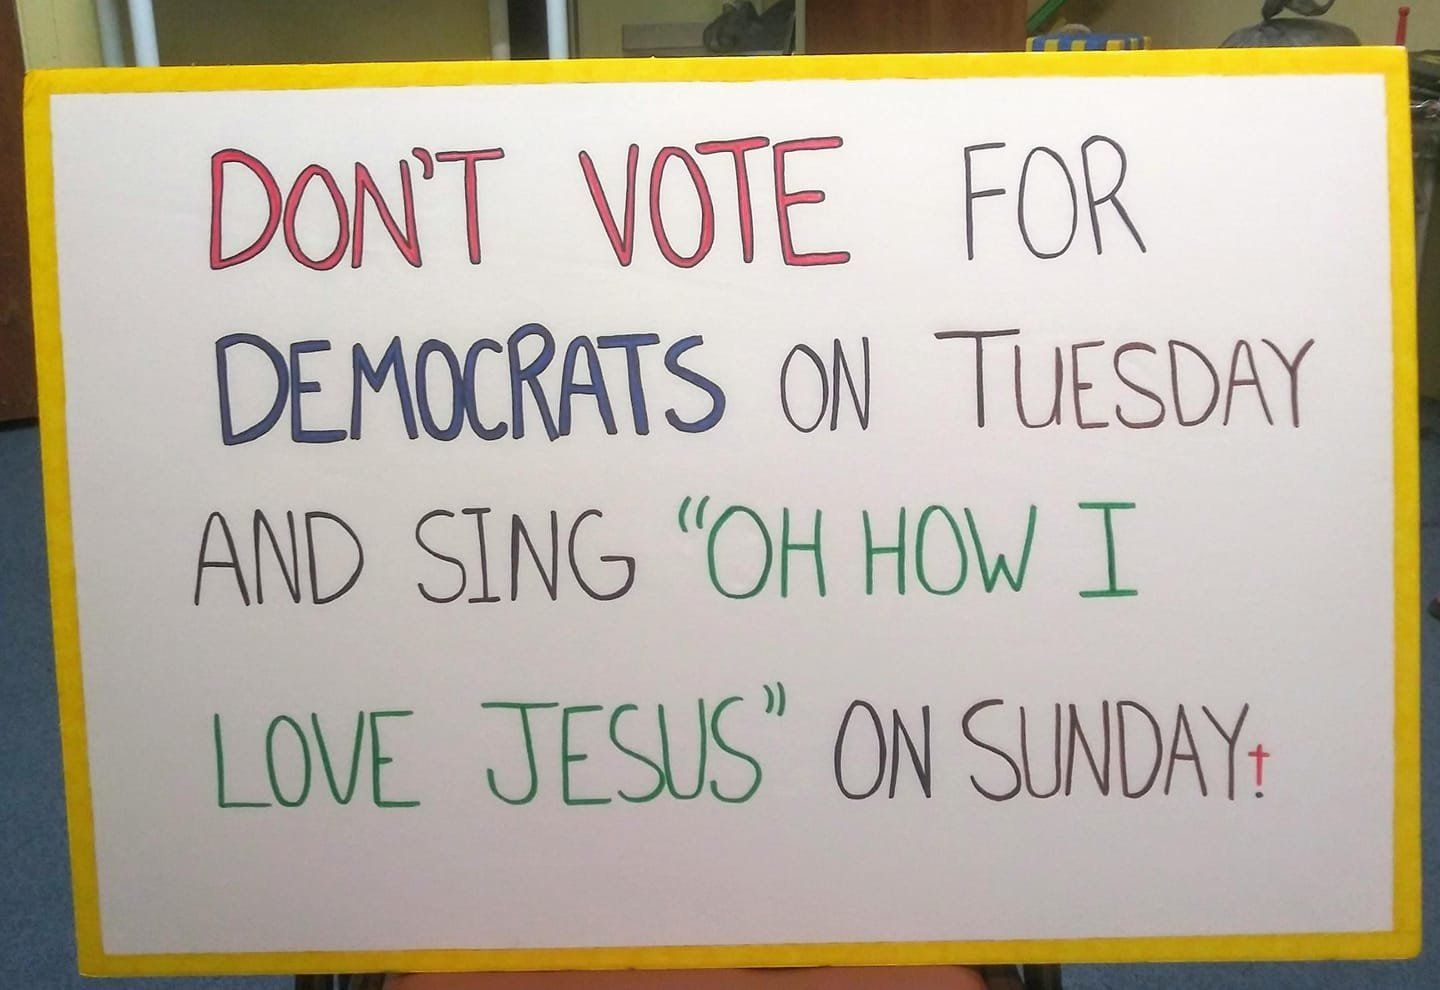 Al Carlisle, the senior pastor of Grace of God Church in New Port Richey, Florida, posted a photo of this sign on his Fa